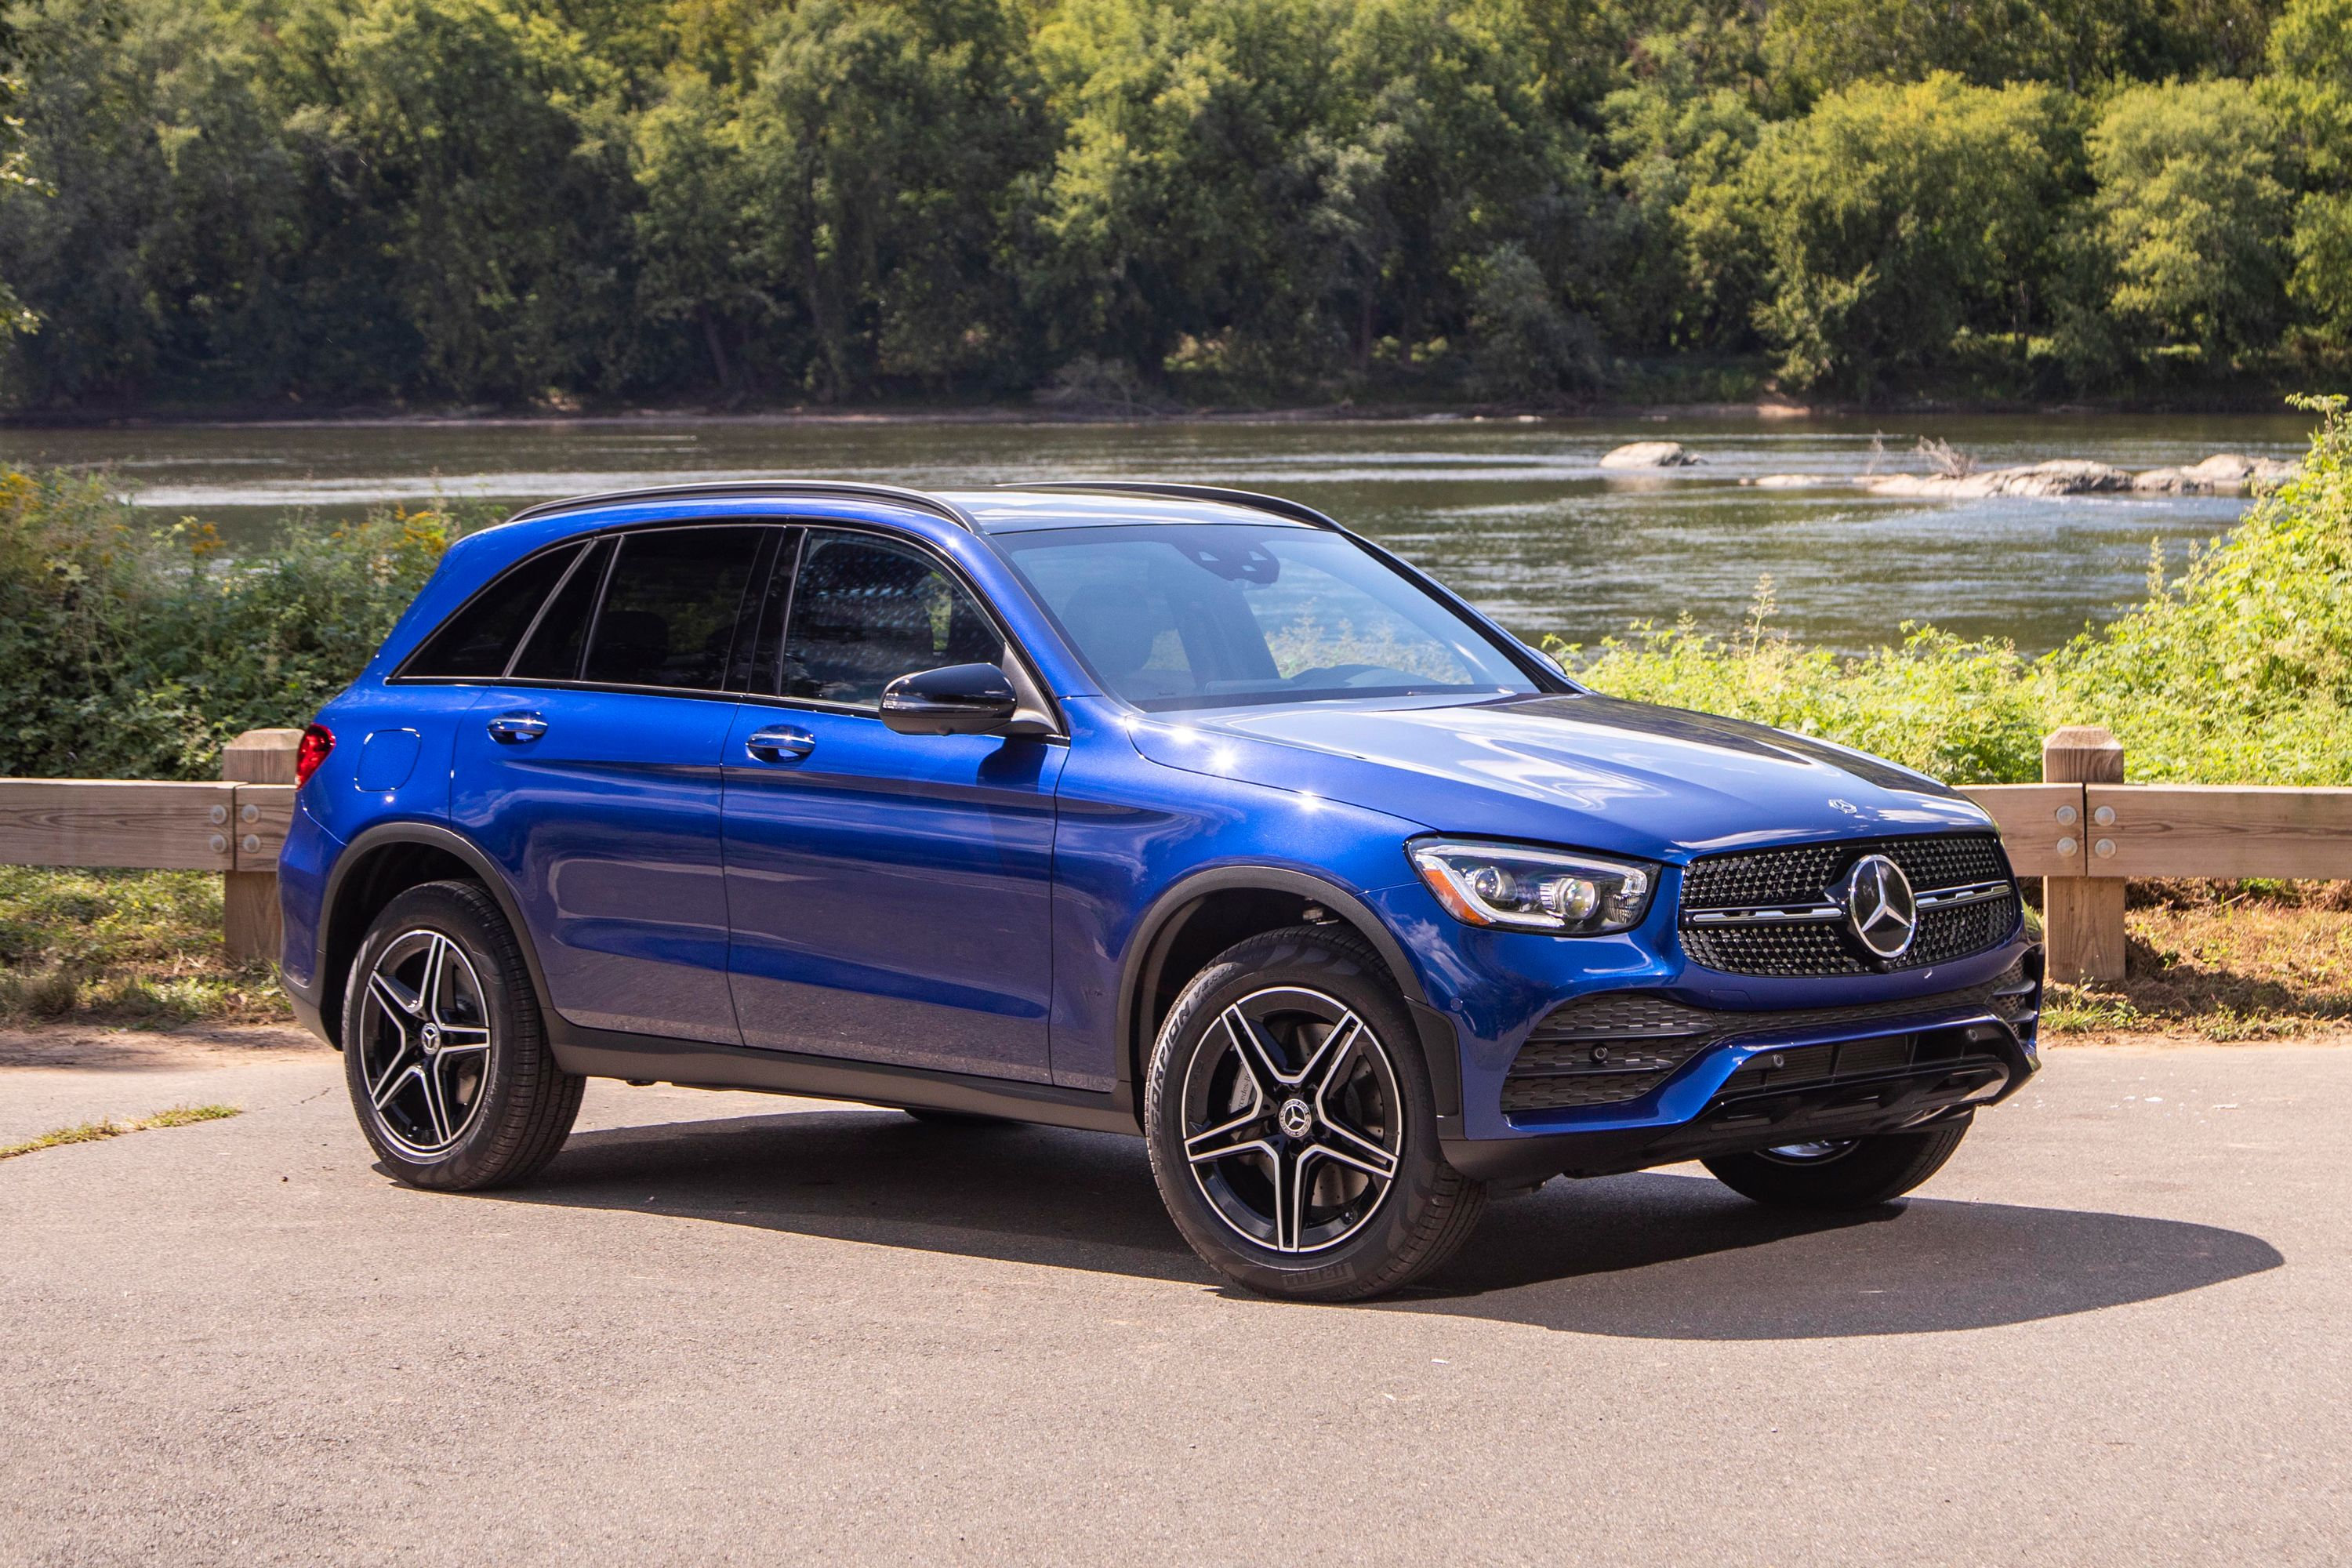 Mercedes Benz Glc Class Features And Specs